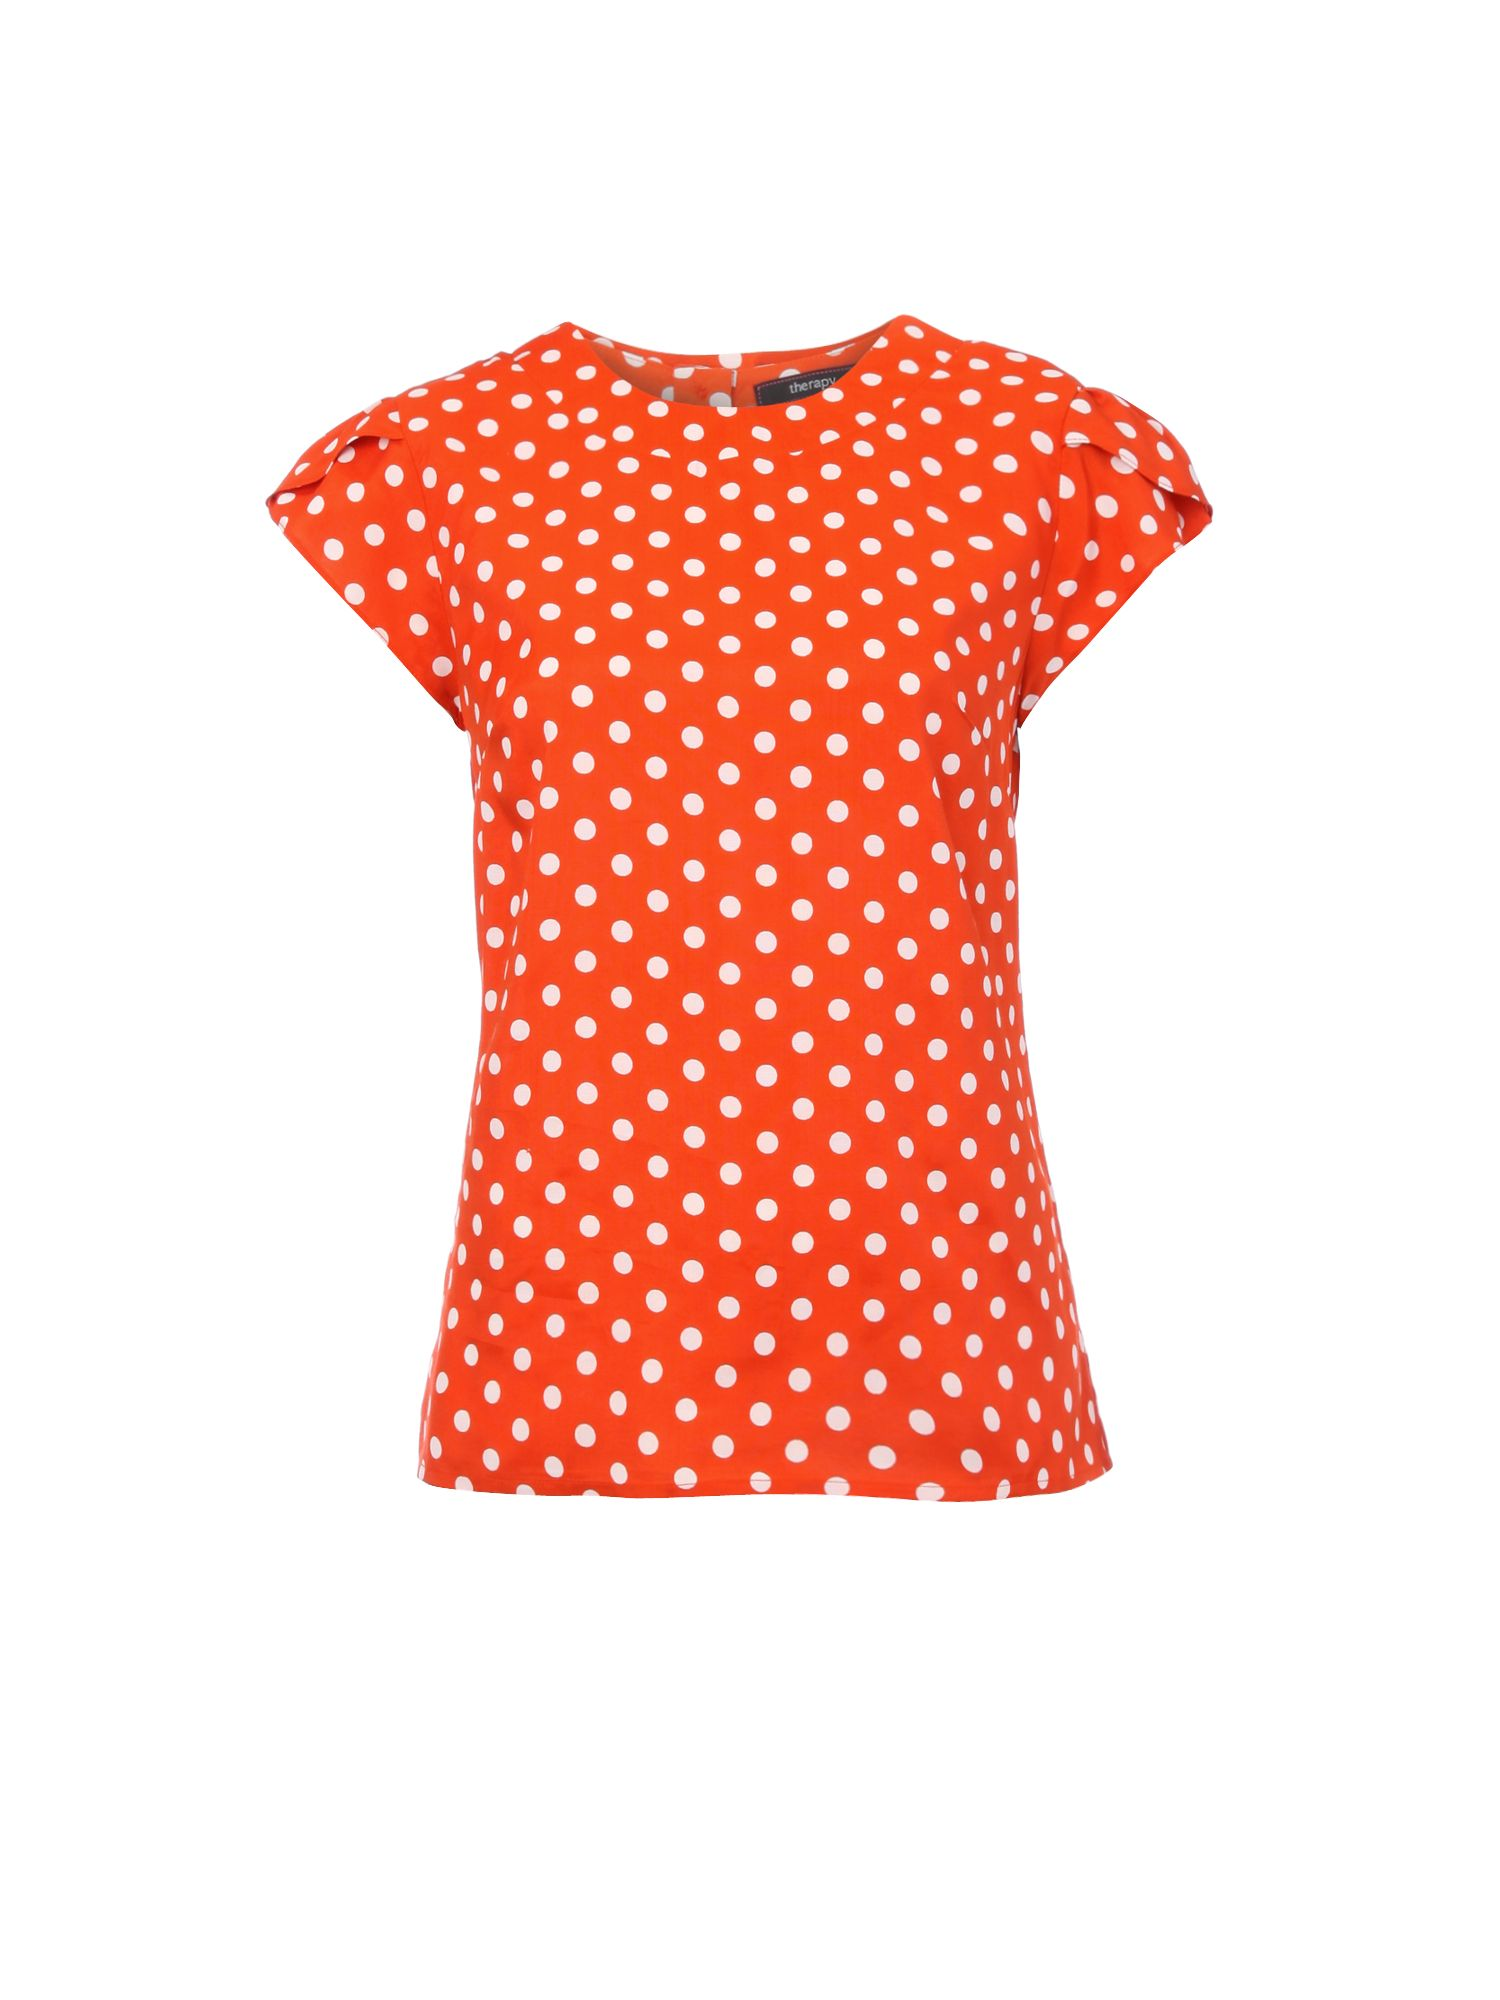 Therapy Womens Therapy Spot blouse, Orange 160912195 product image